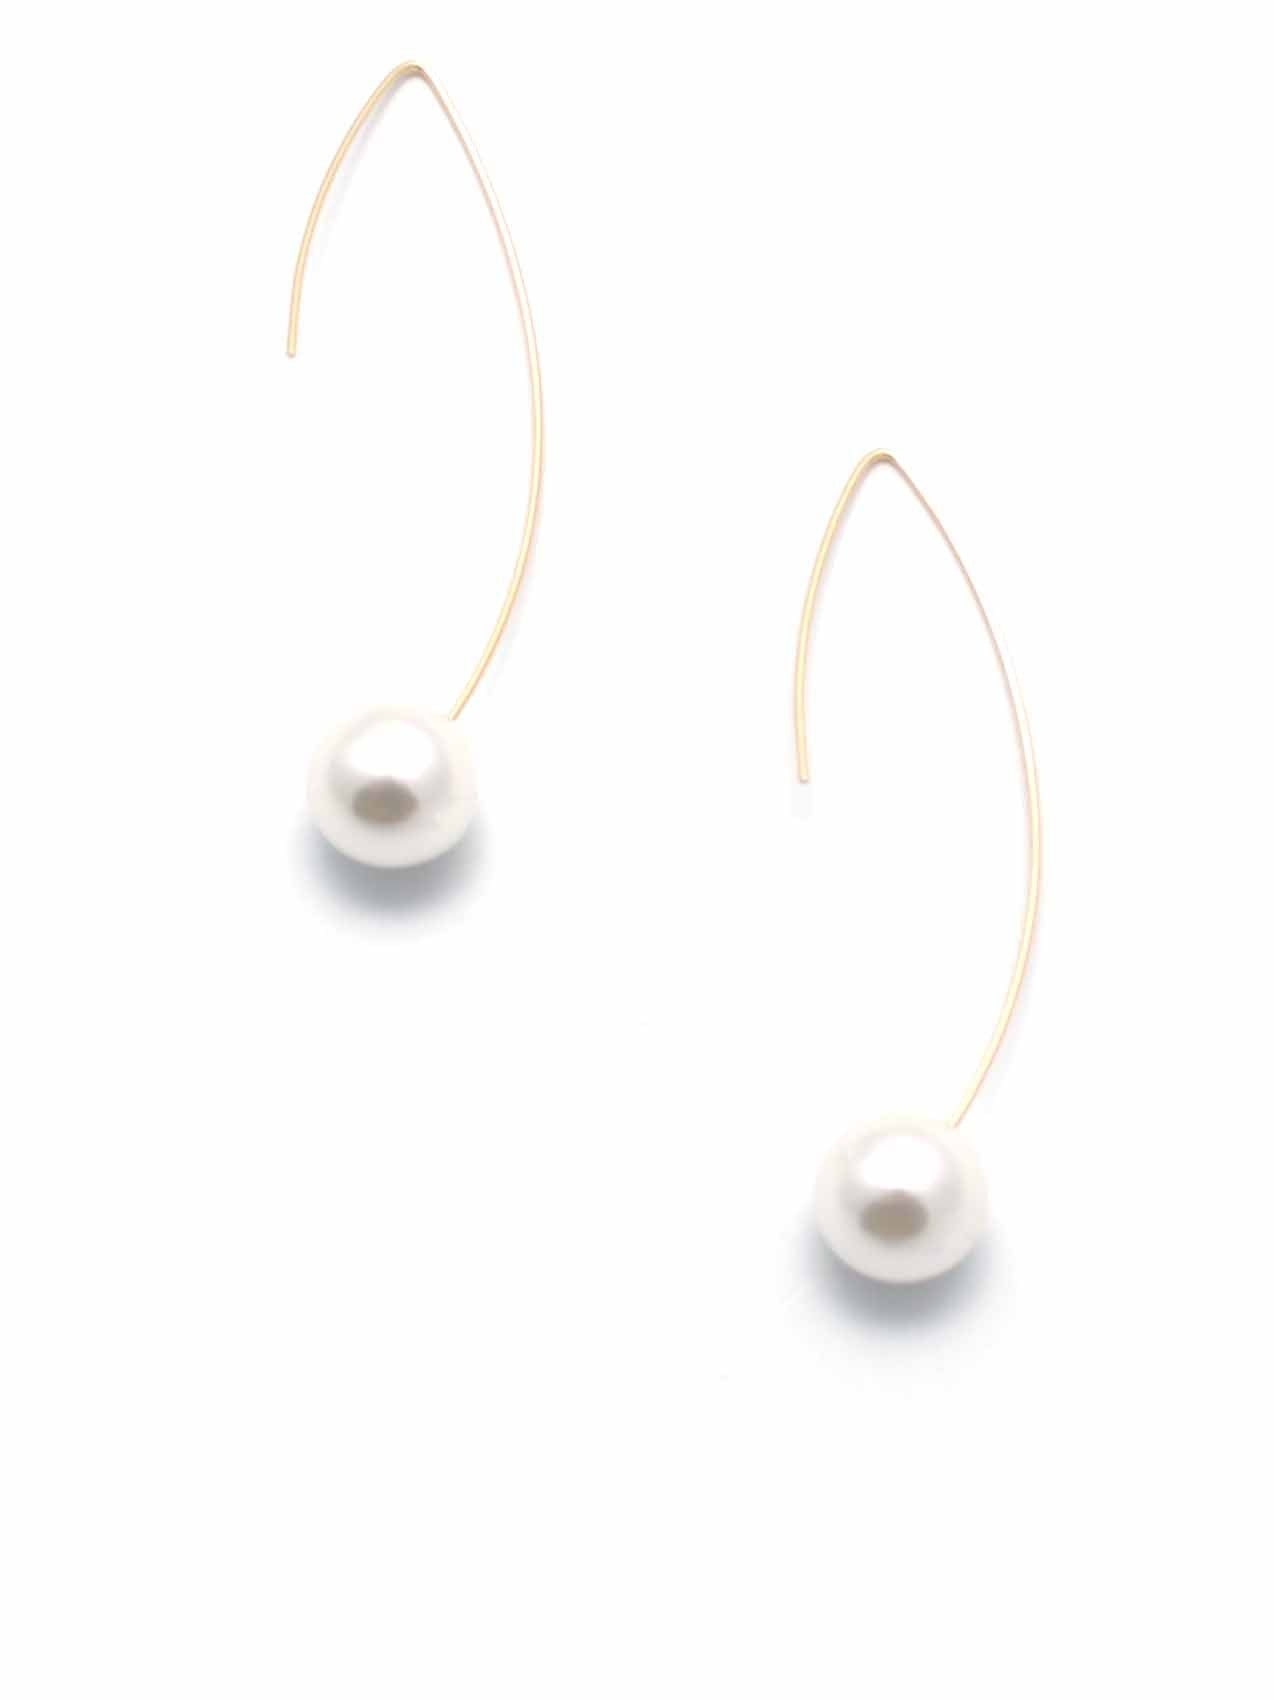 Astrid Gold Pearl Earrings - Micha Store  - 1